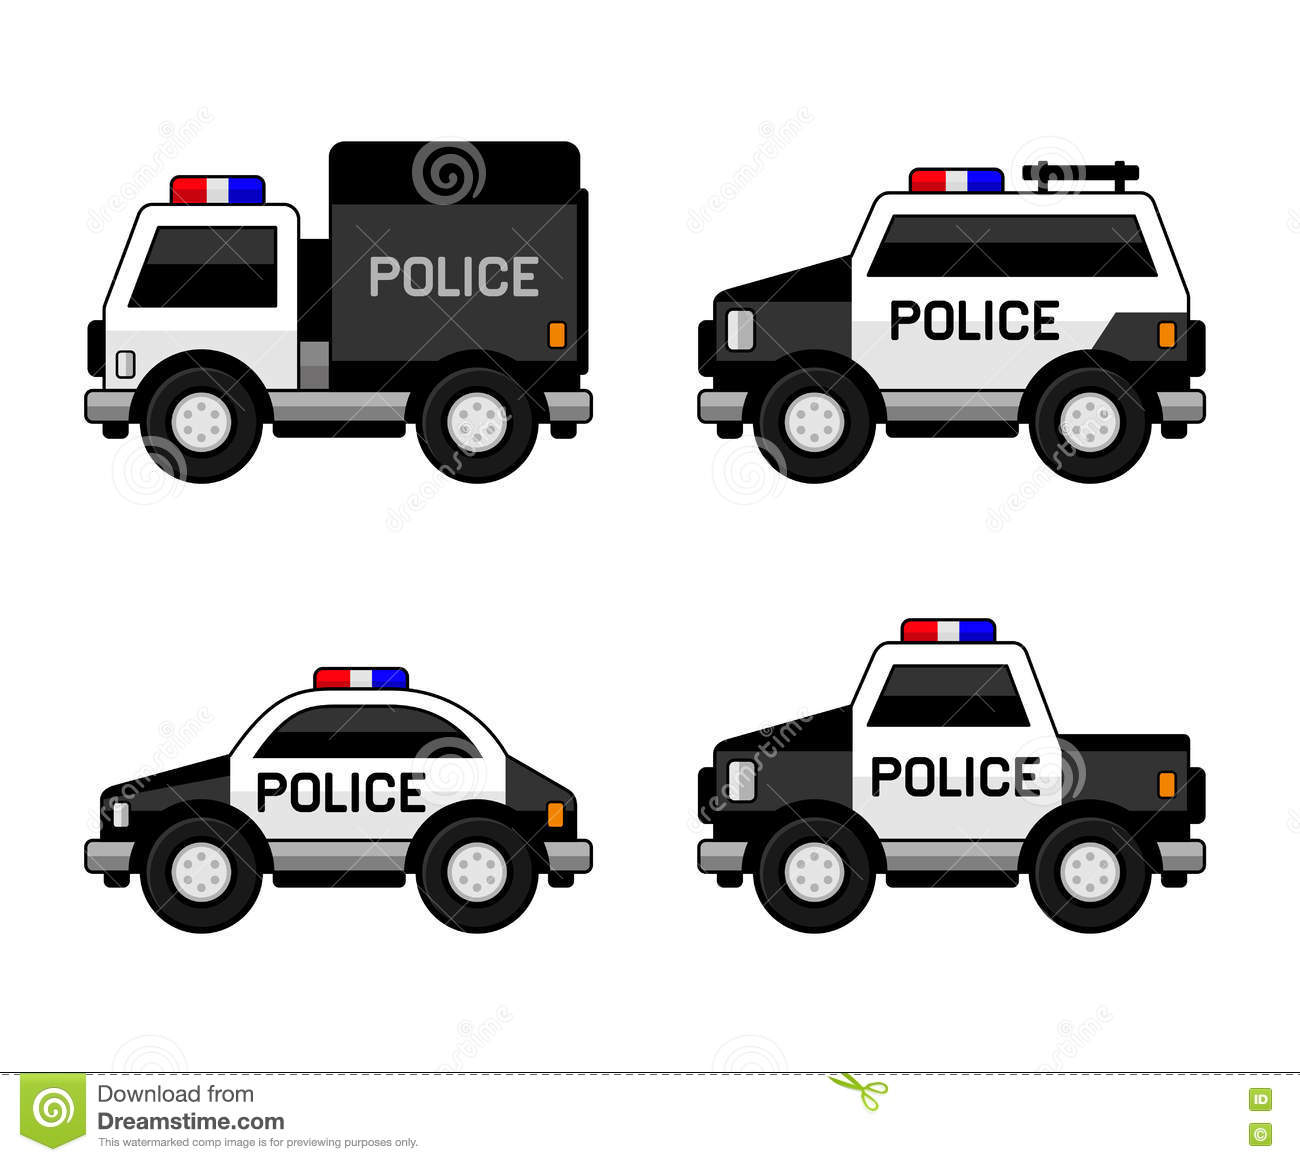 Royalty Free Vector Download Police Car Set Classic Black And White Colors Stock